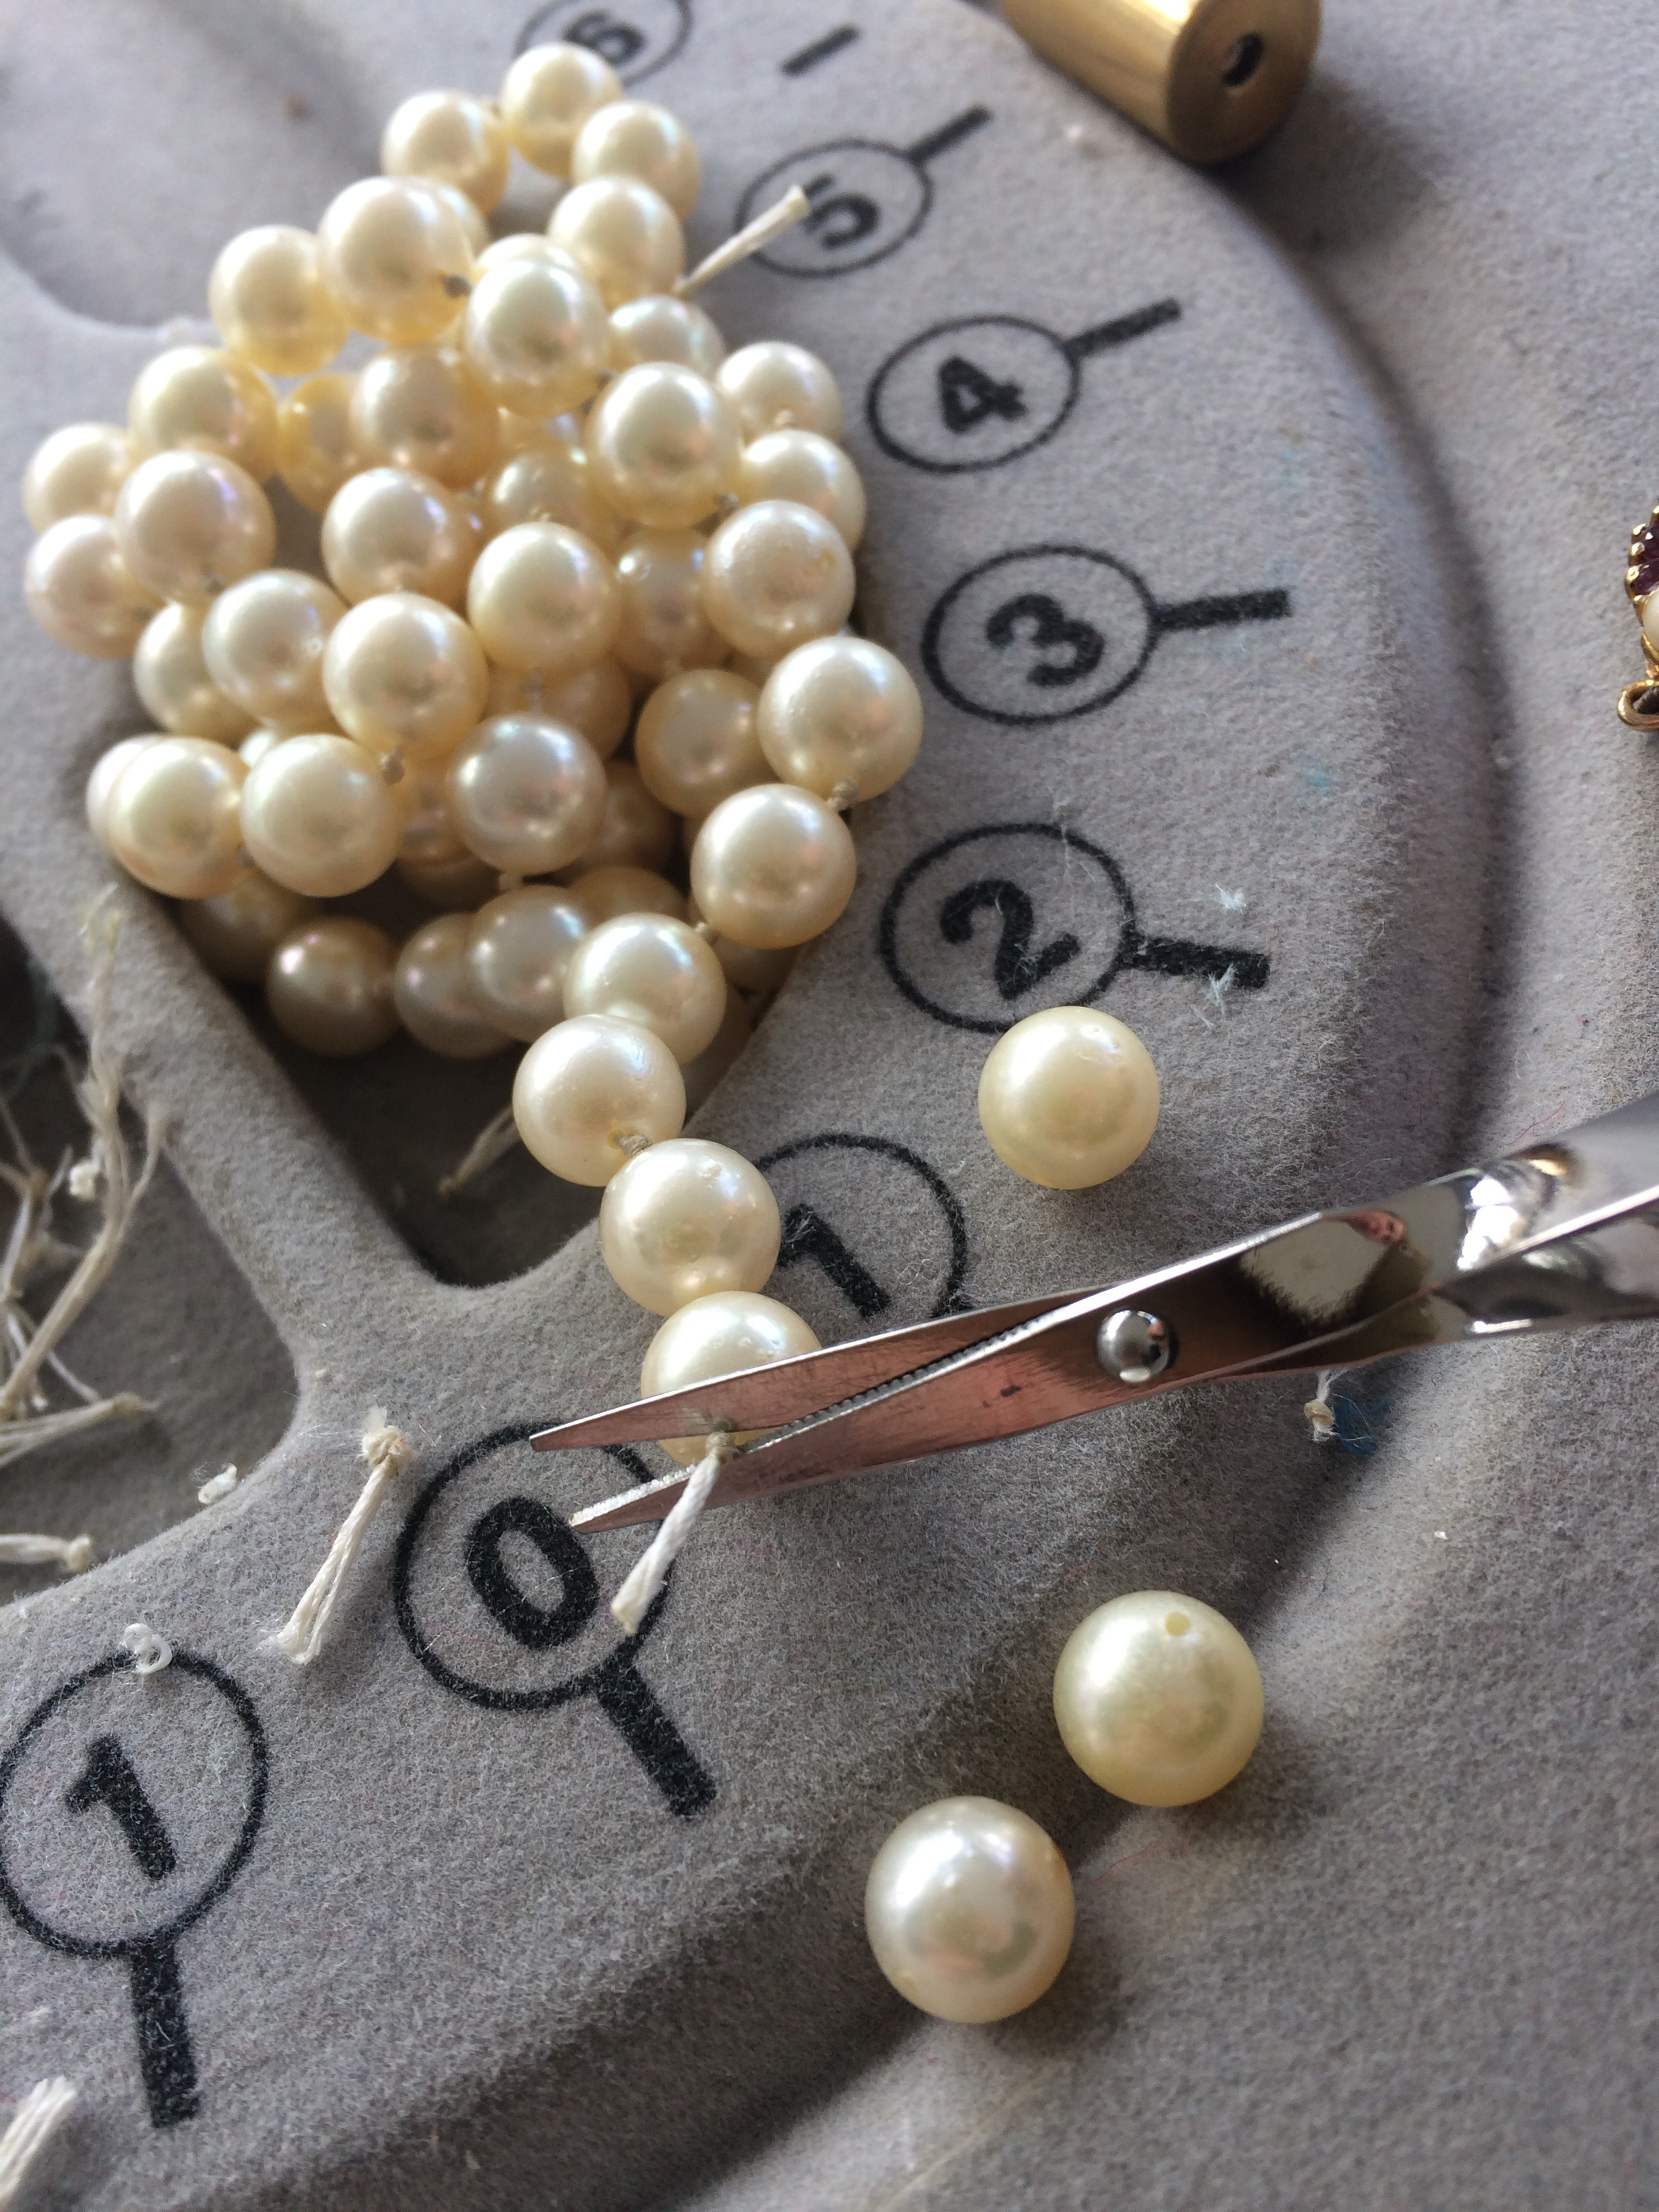 Cutting each knot to remove the individual pearls